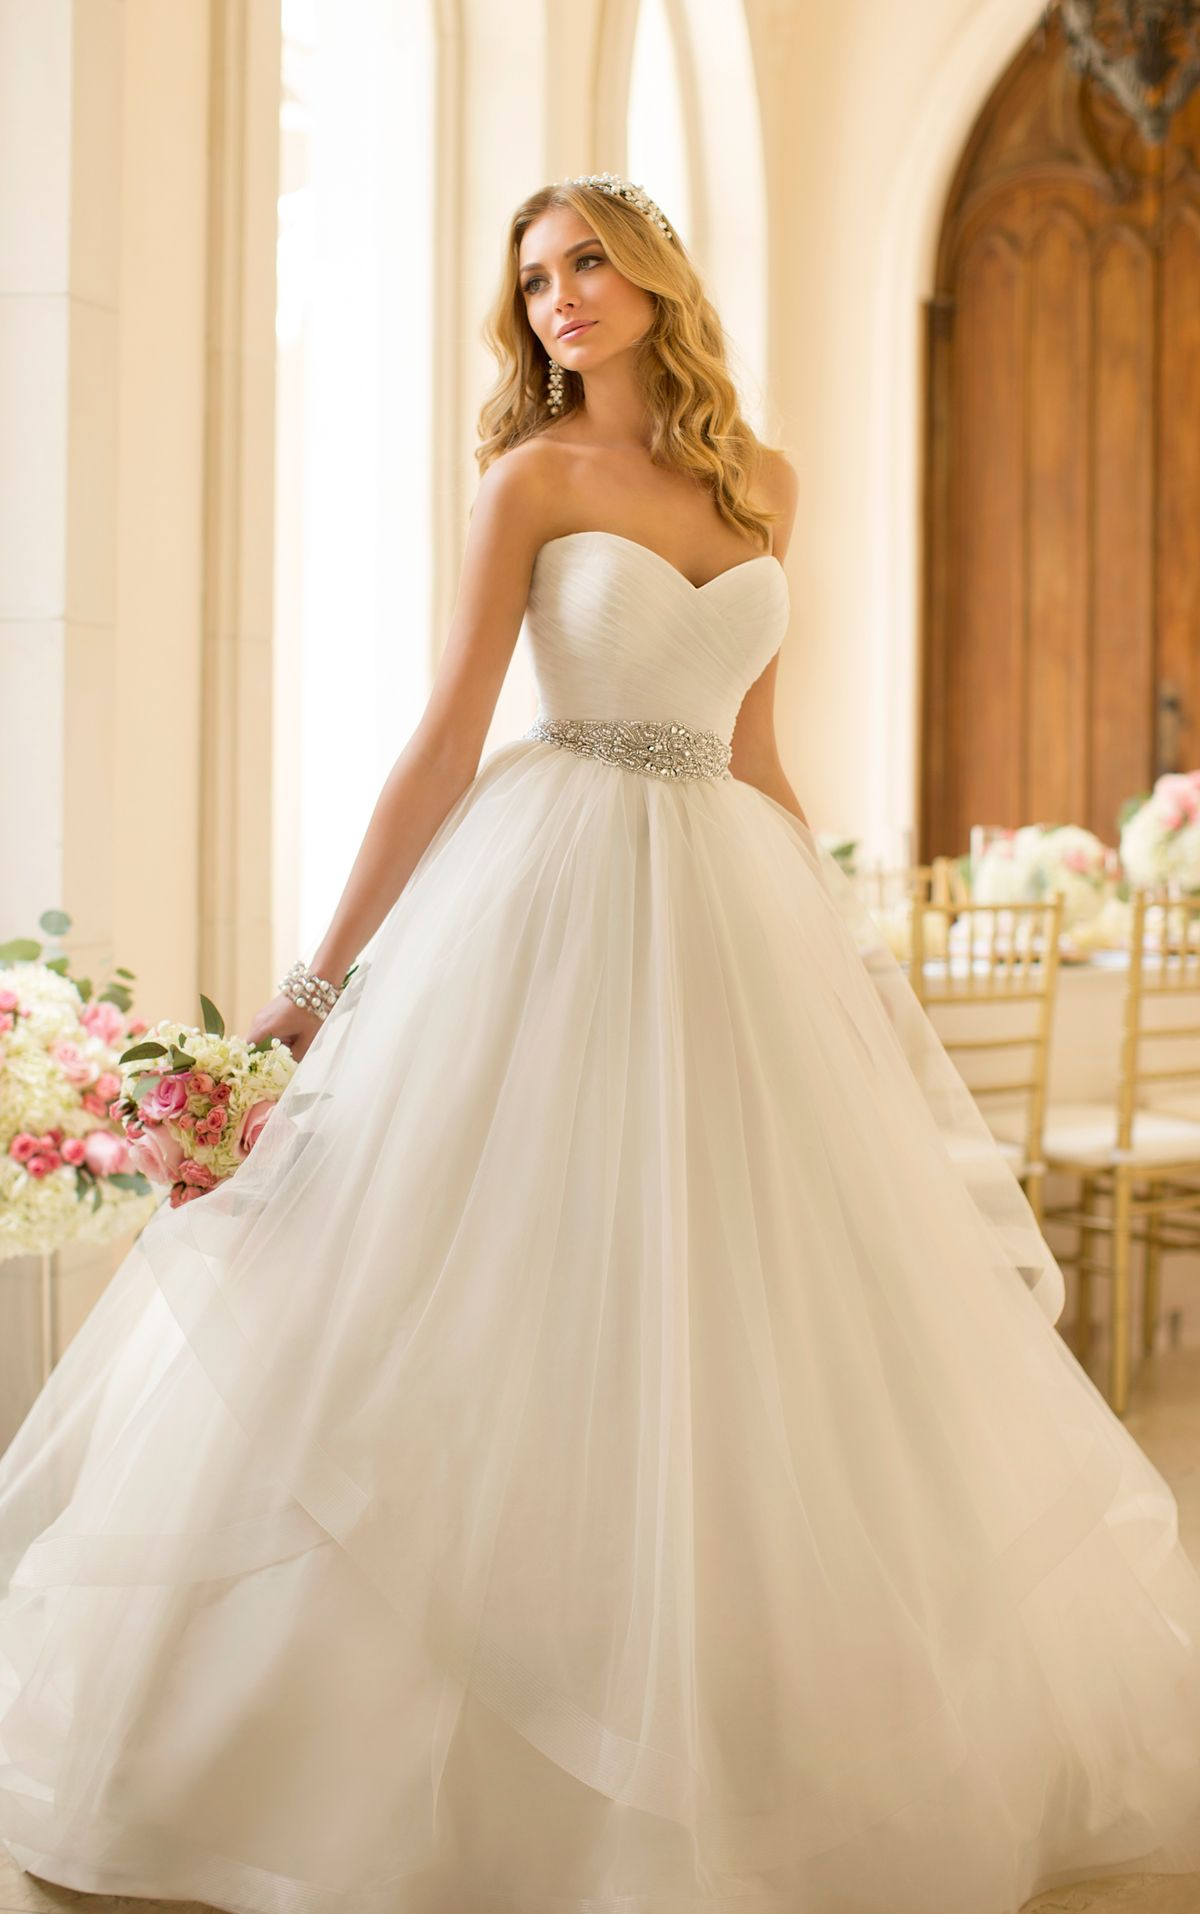 Isnt This A Very Pretty Wedding Dress